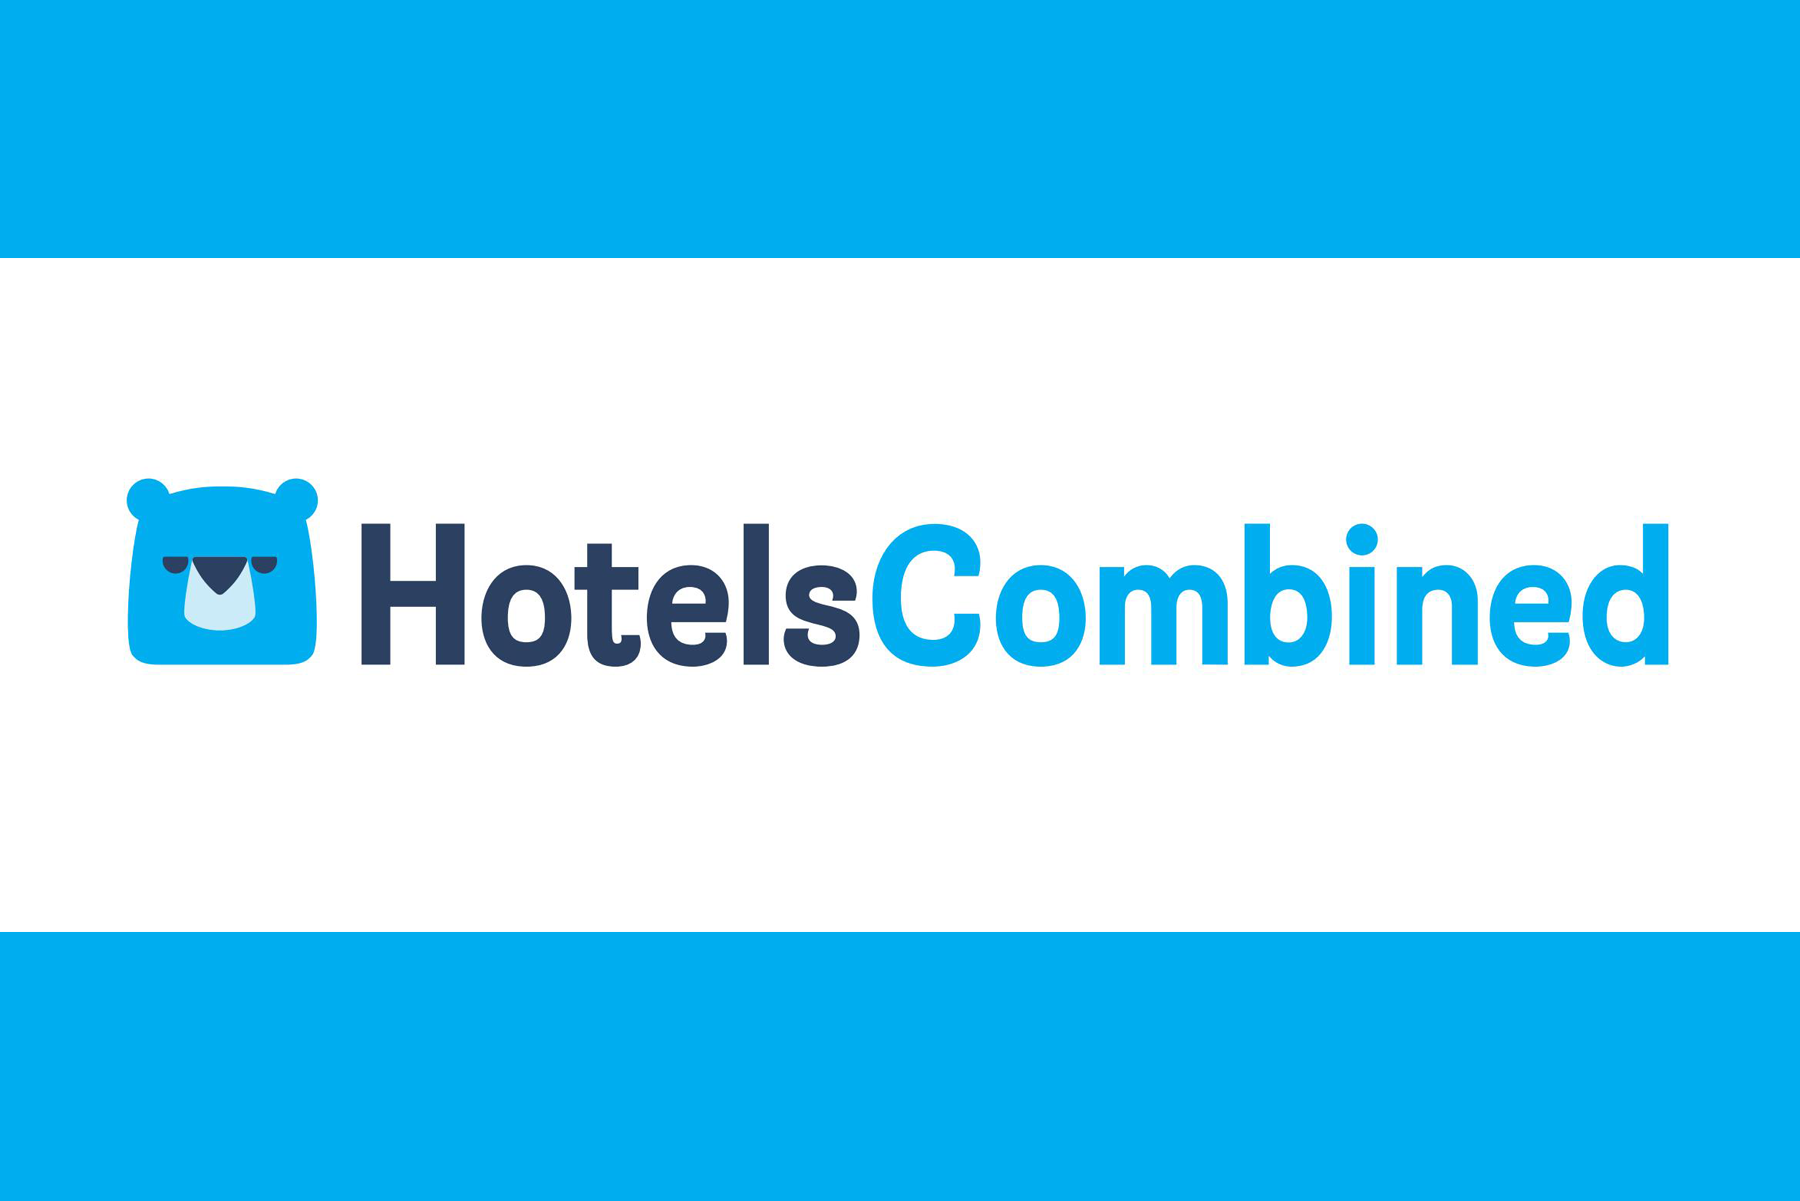 HotelsCombined Recognition of Excellence for 2017!